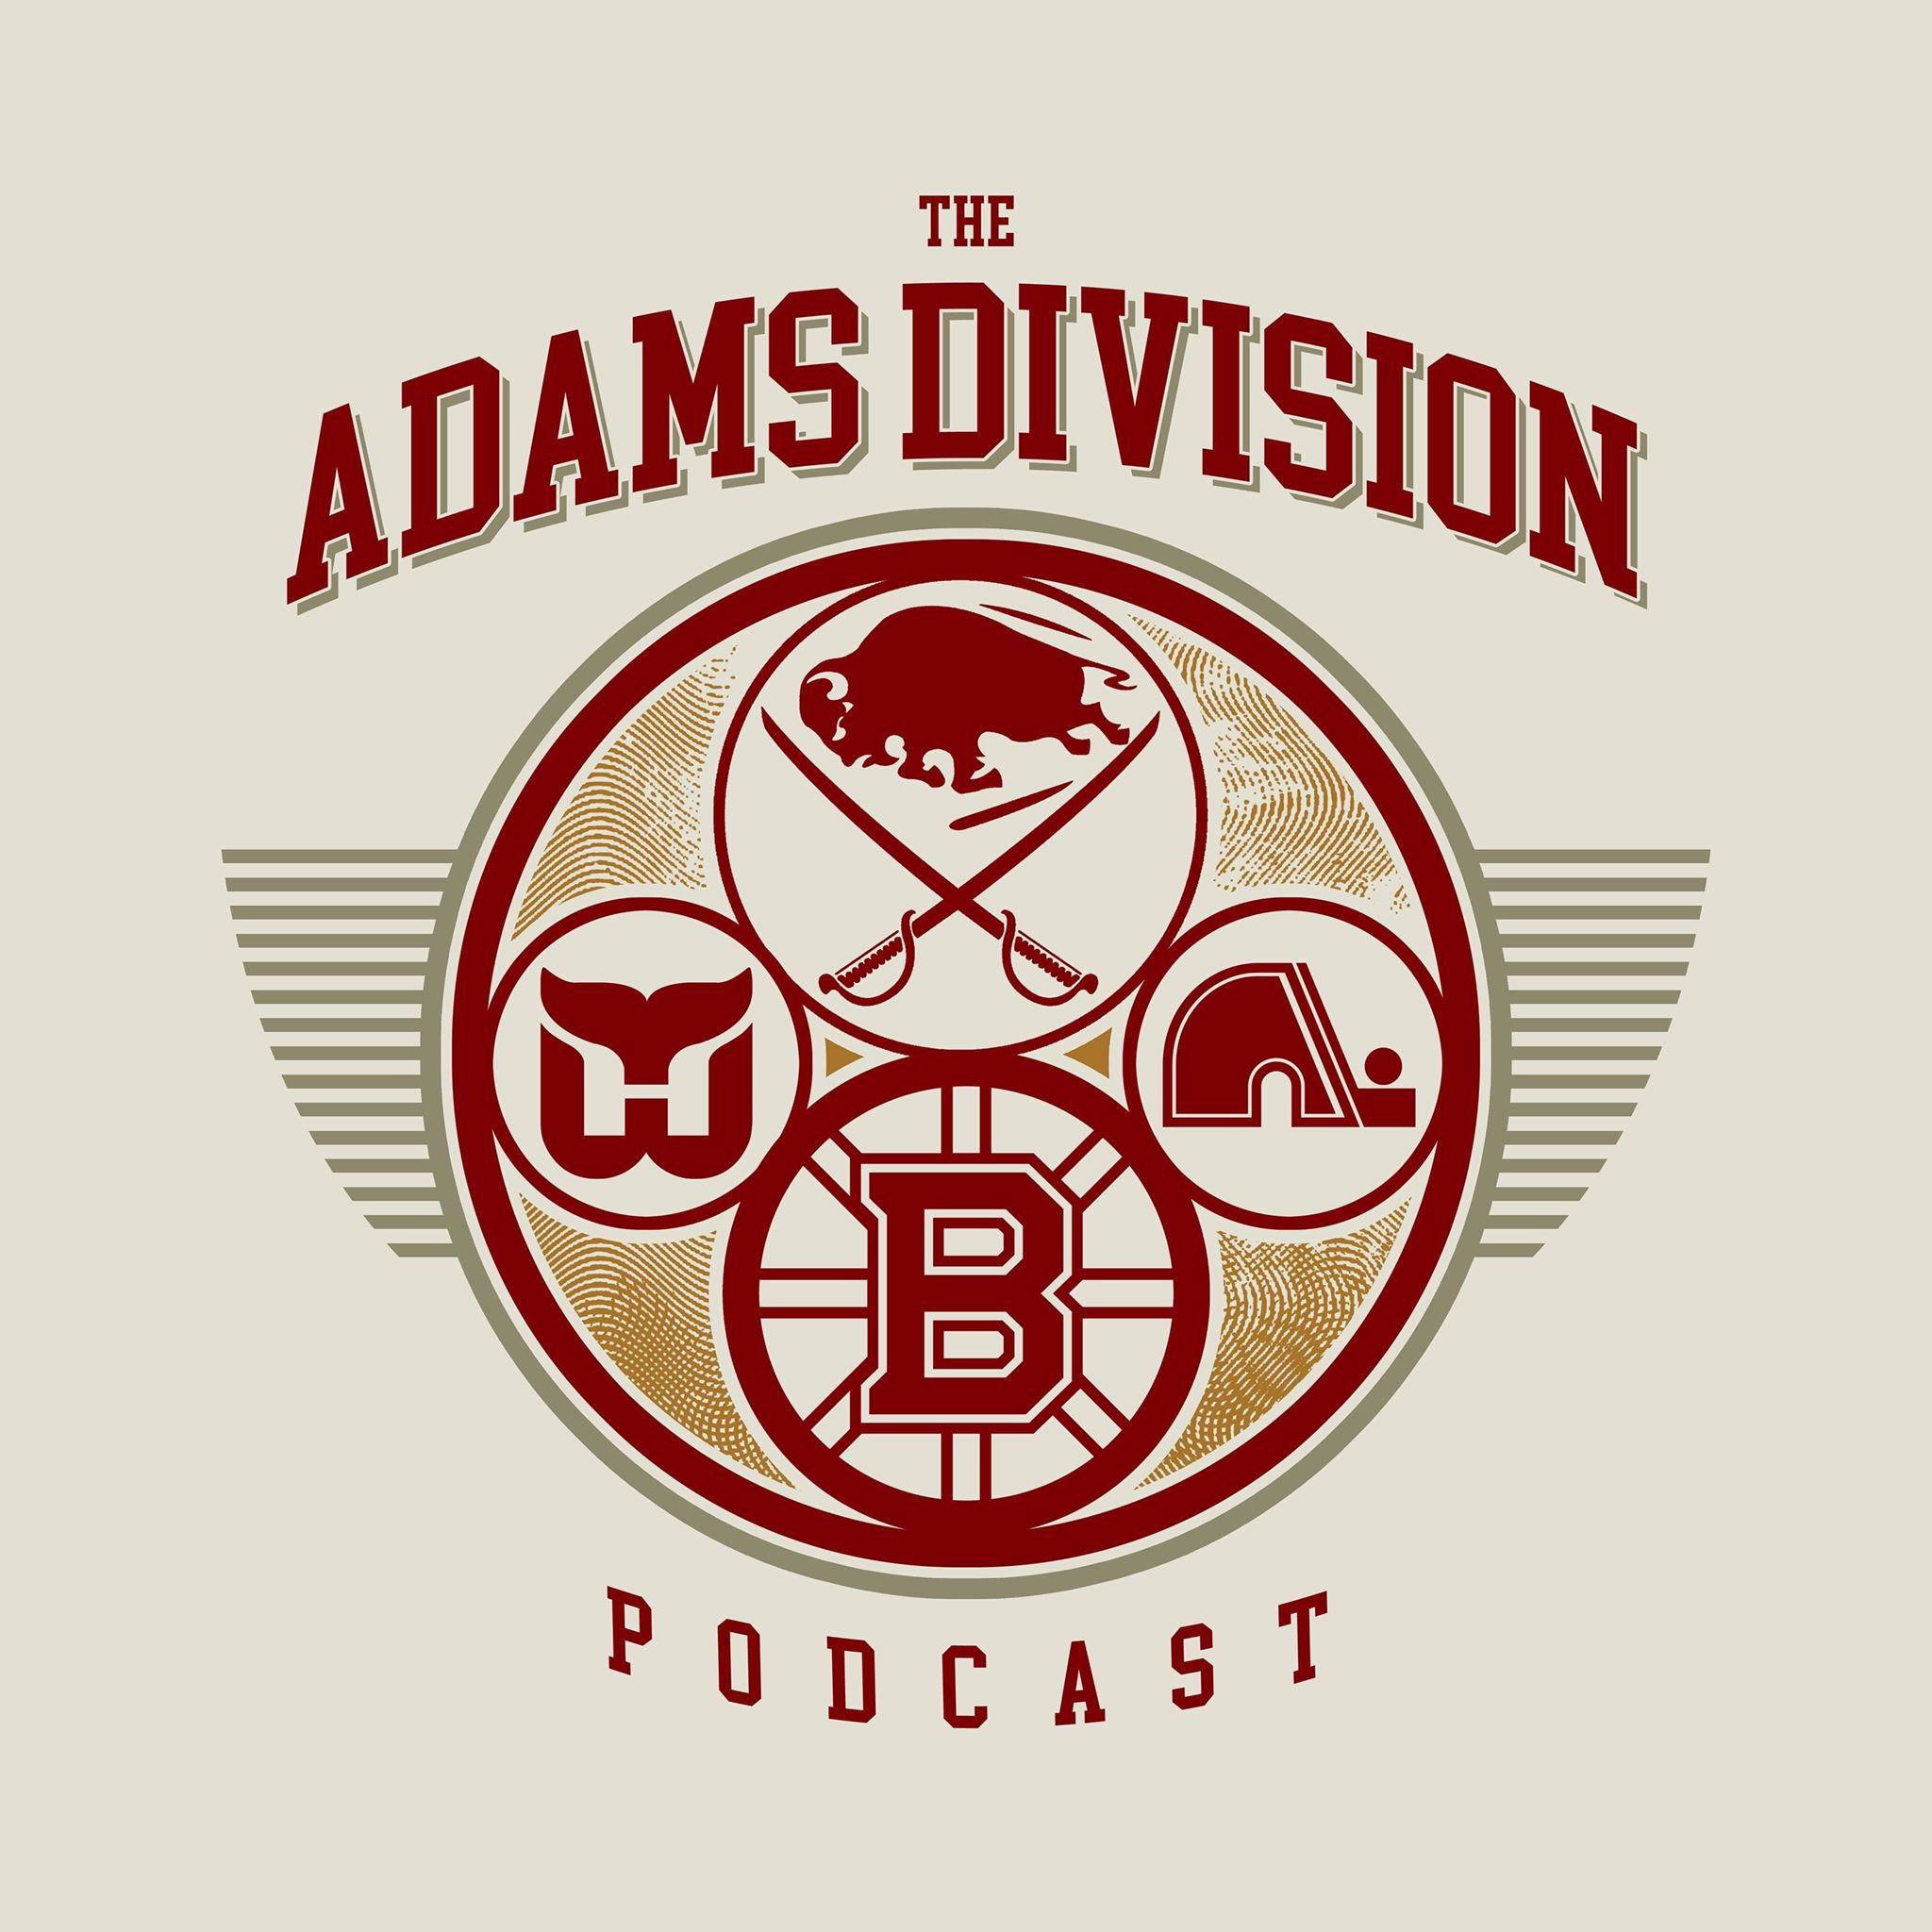 The Adams Division Podcast: Sports Special - Favorite Single Season Sports Teams, Part One